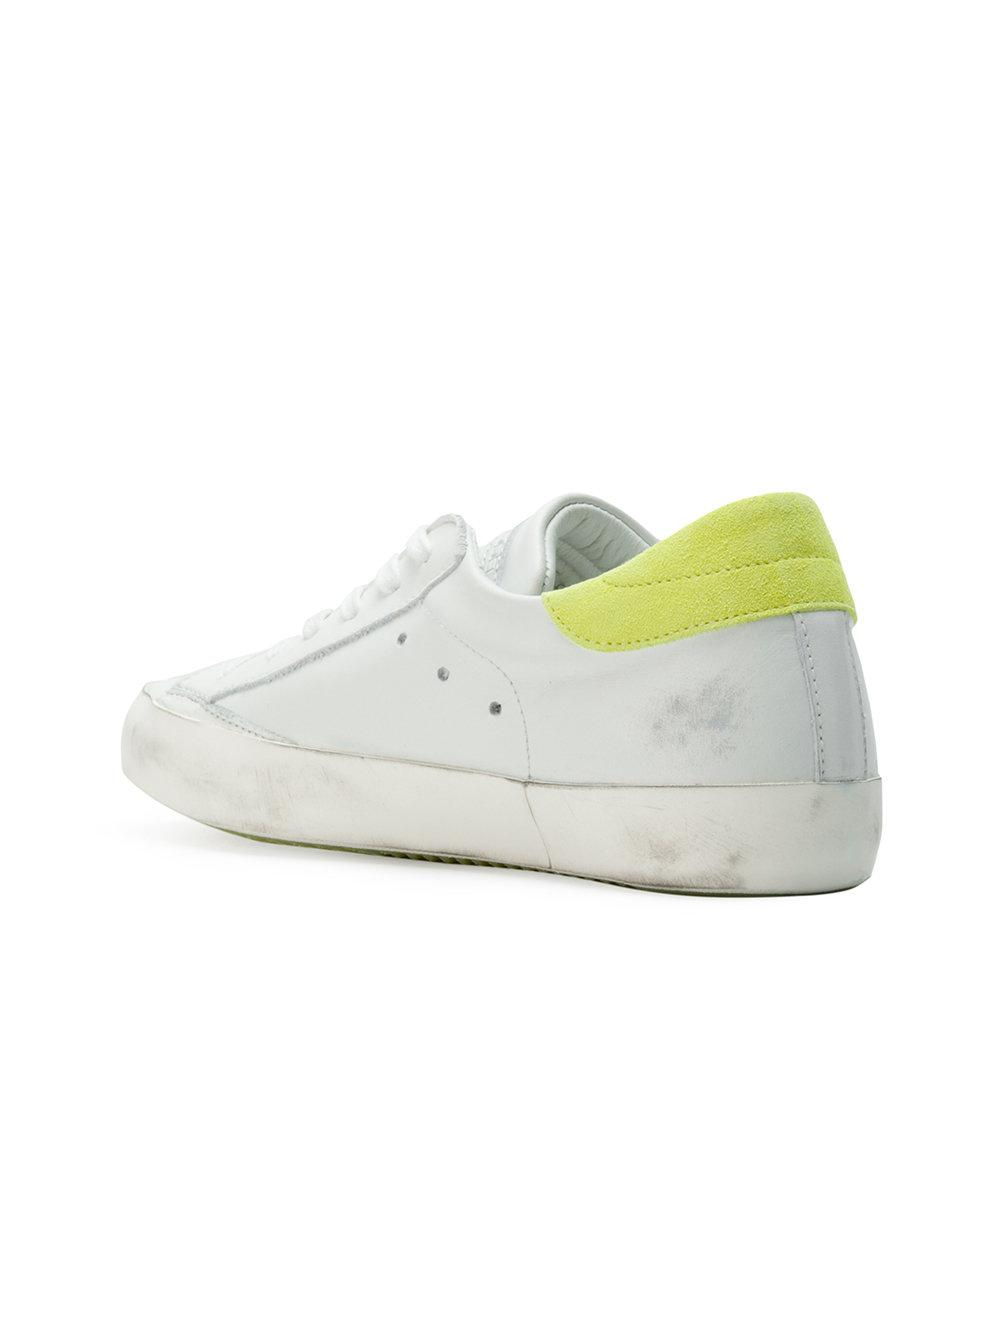 Paris lace-up sneakers - White Philippe Model Ntdcjxq0v